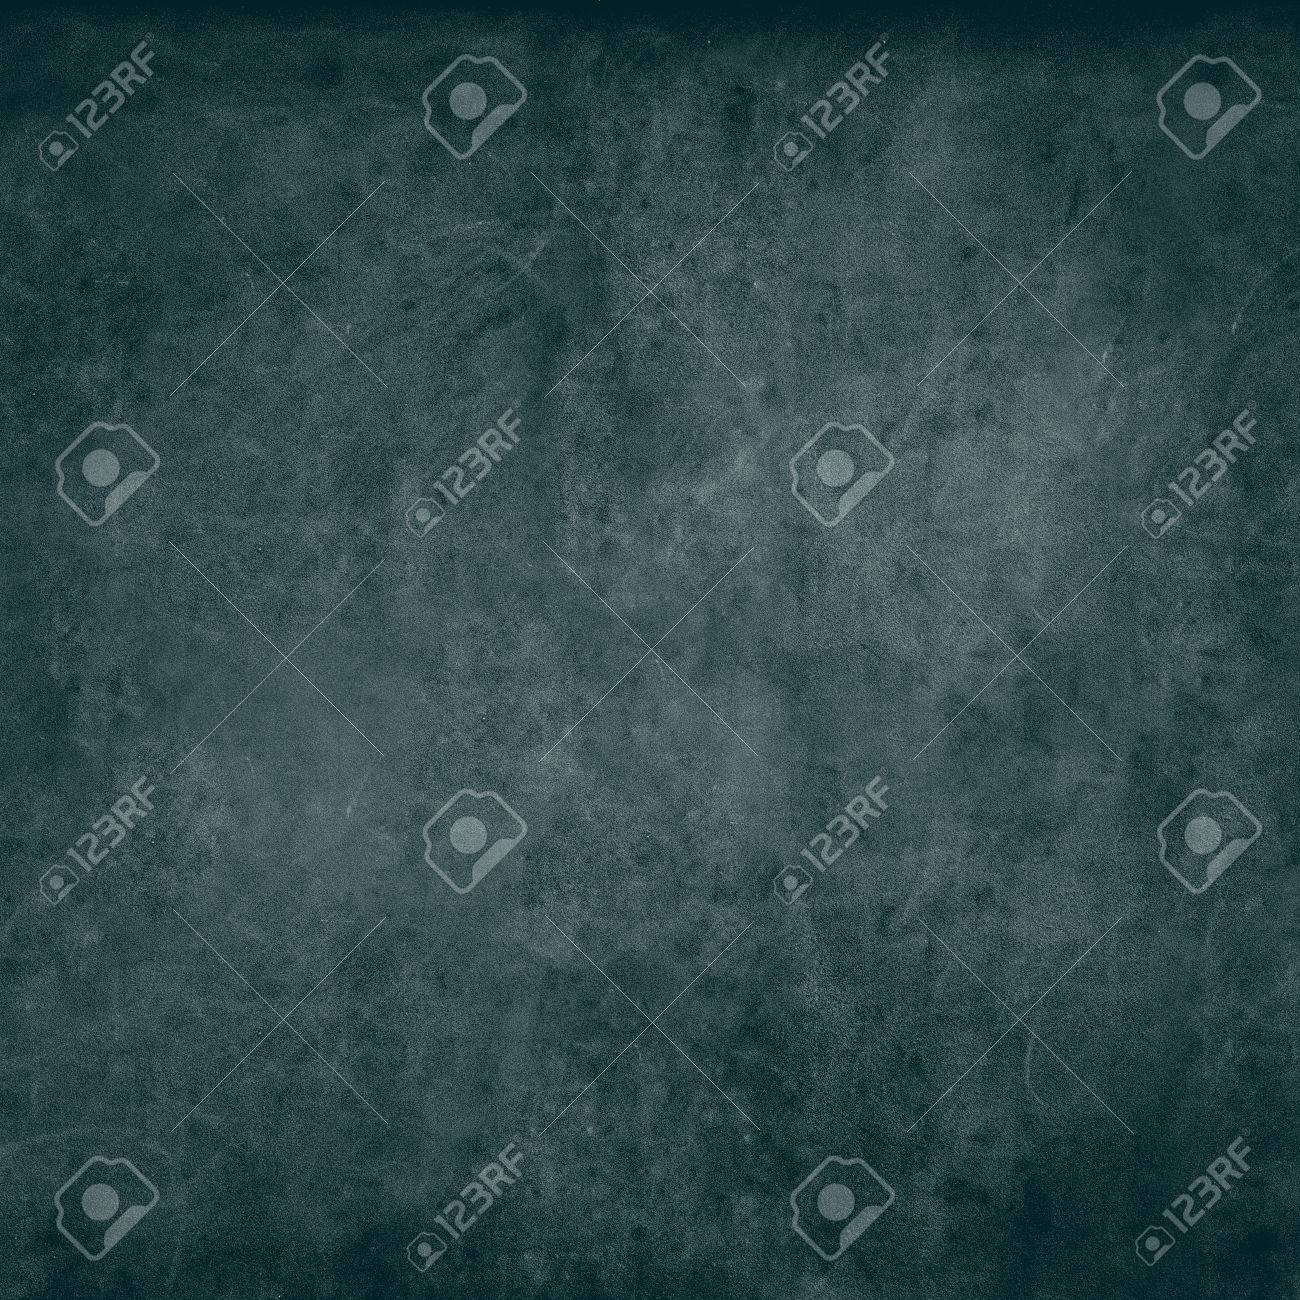 stock photo turquoise chalkboard texture abstract dark blue blackboard background classroom chalk erased school vintage monochrome square